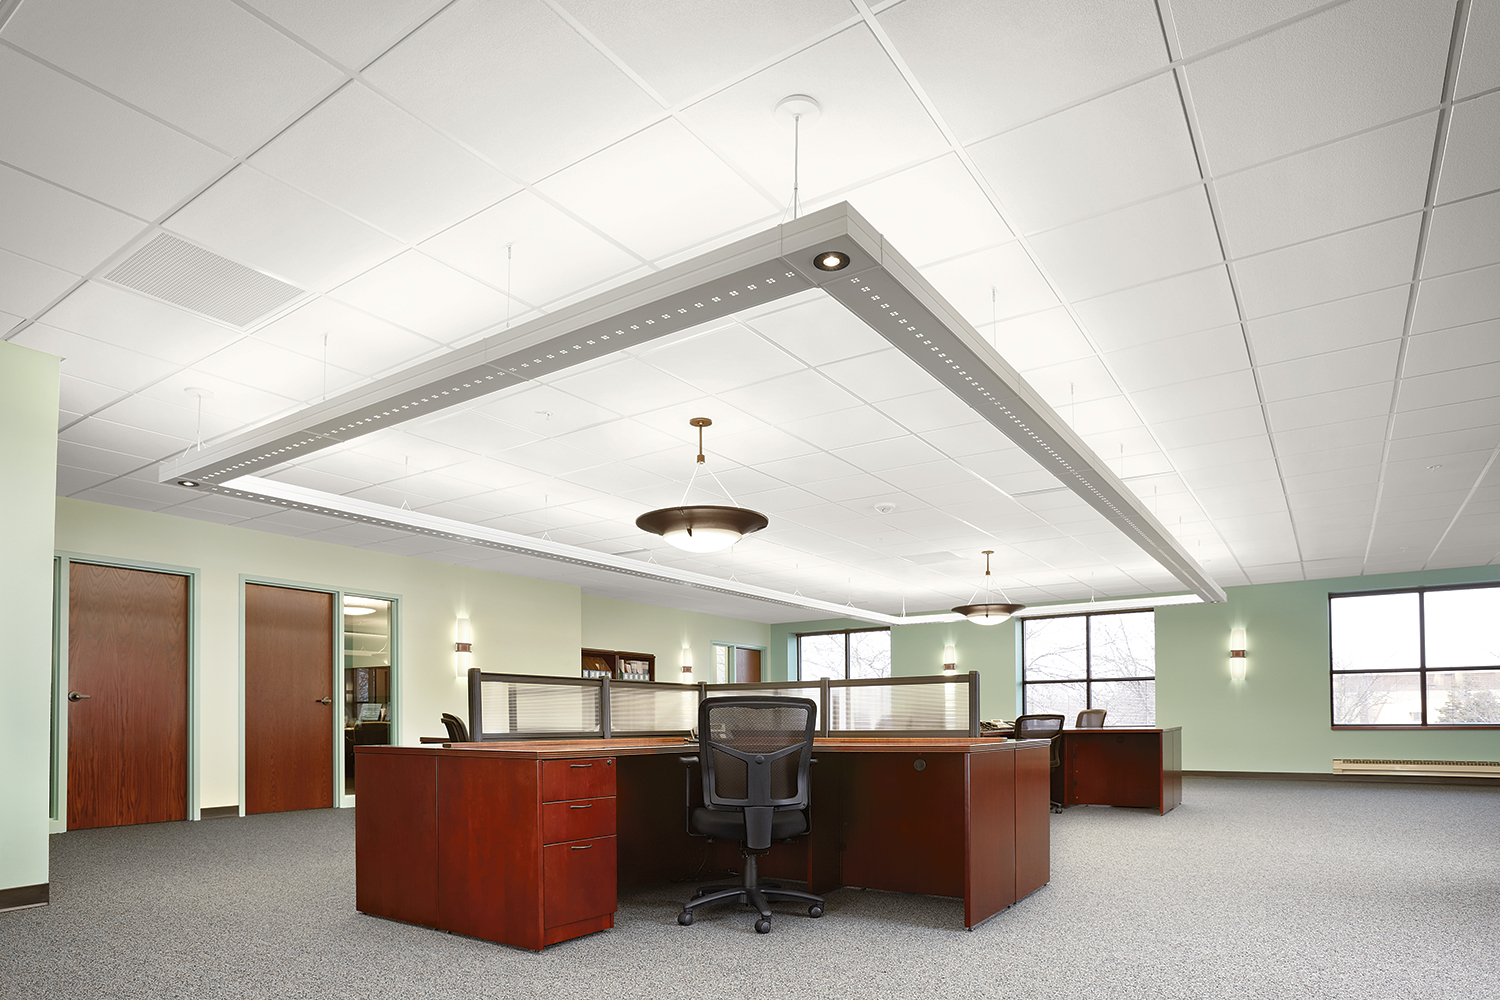 Infinity Performance large linear suspended luminaires in a rectangular configuration above an open office with Pila sconces.